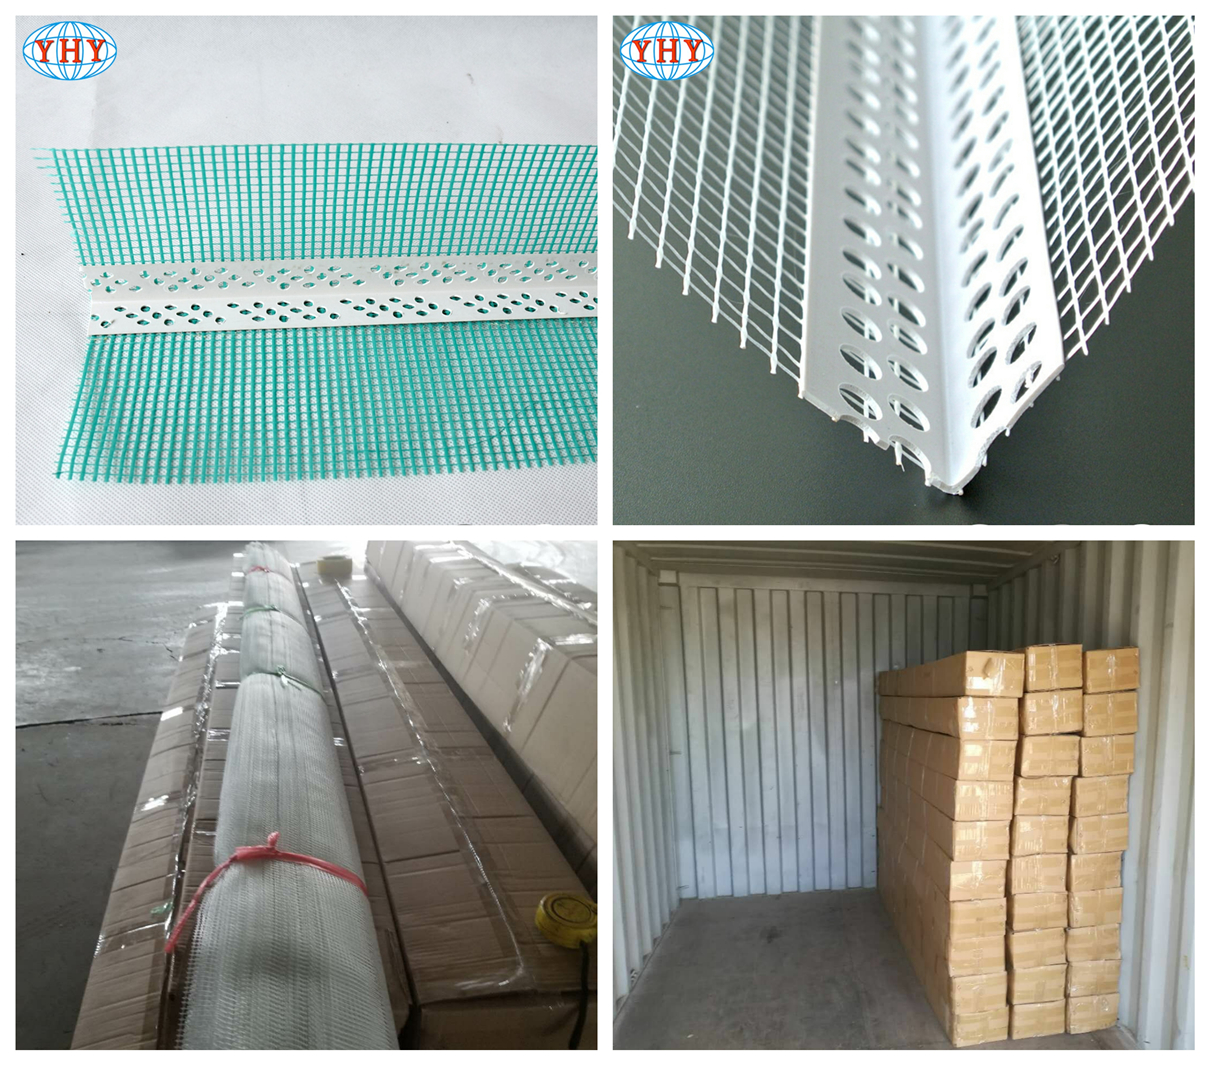 External wall insulation system PVC corner bead